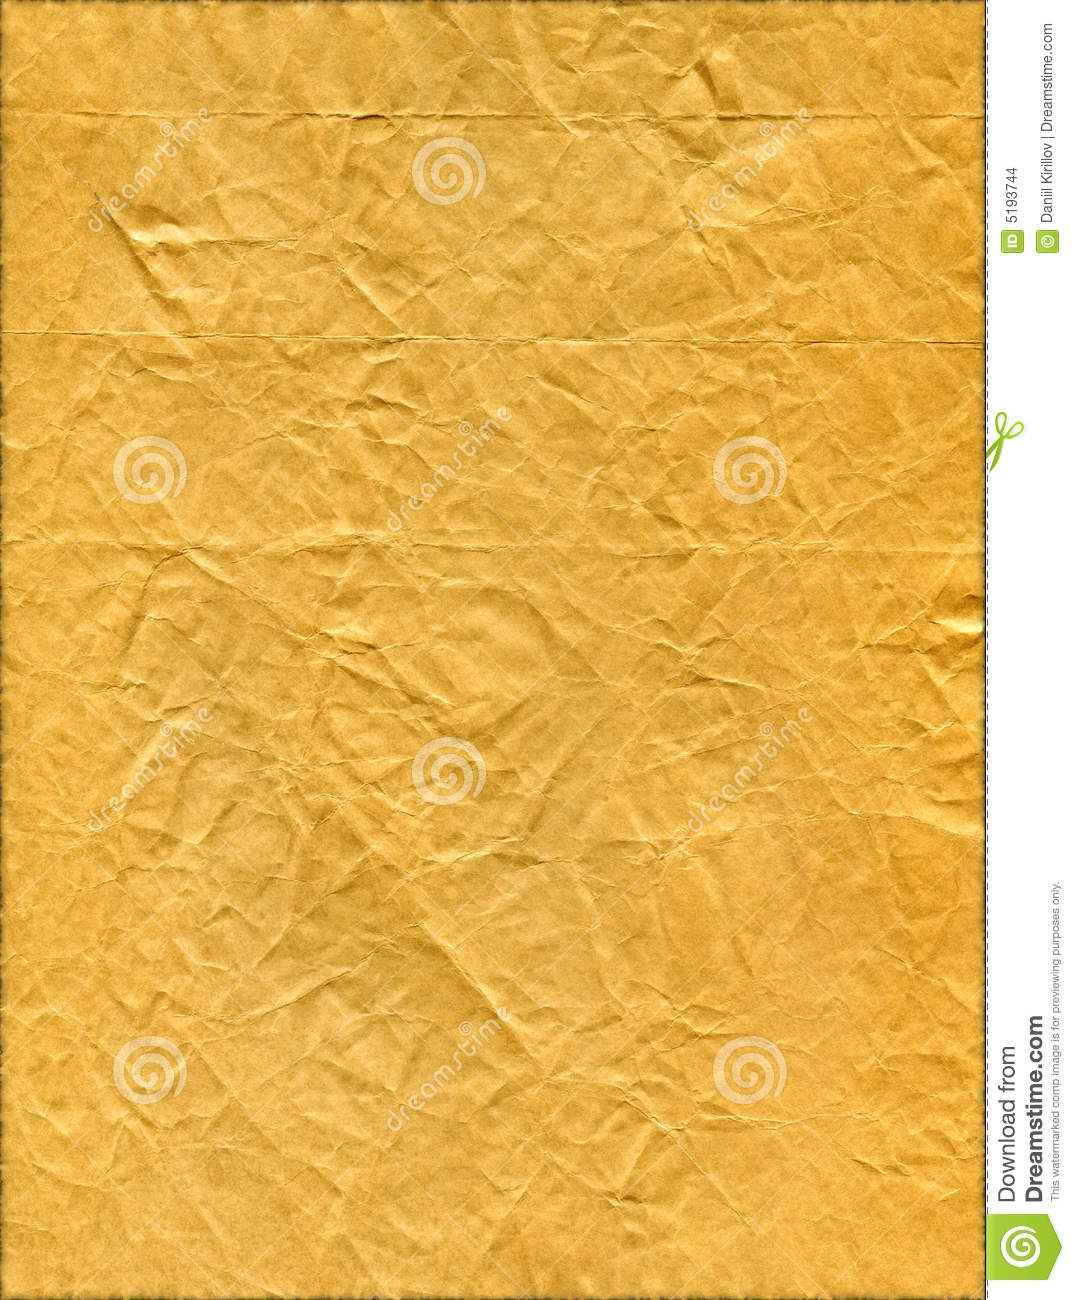 Ripped Old Paper: Vintage Old Retro Ripped Paper Texture Stock Images